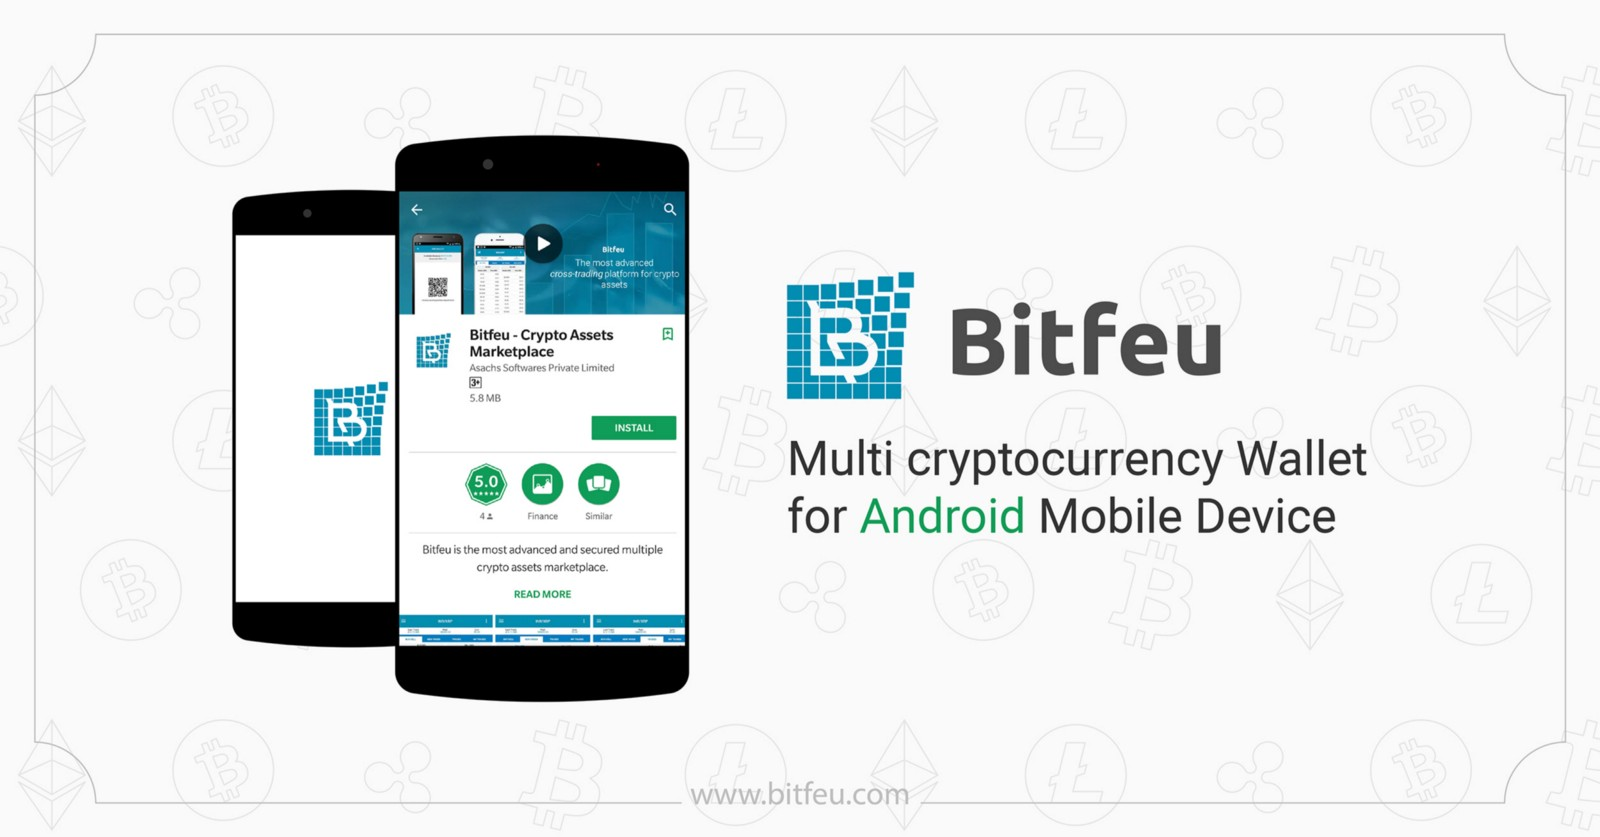 Bitfeu Multi Cryptocurrency Wallet For Android Mobile Device